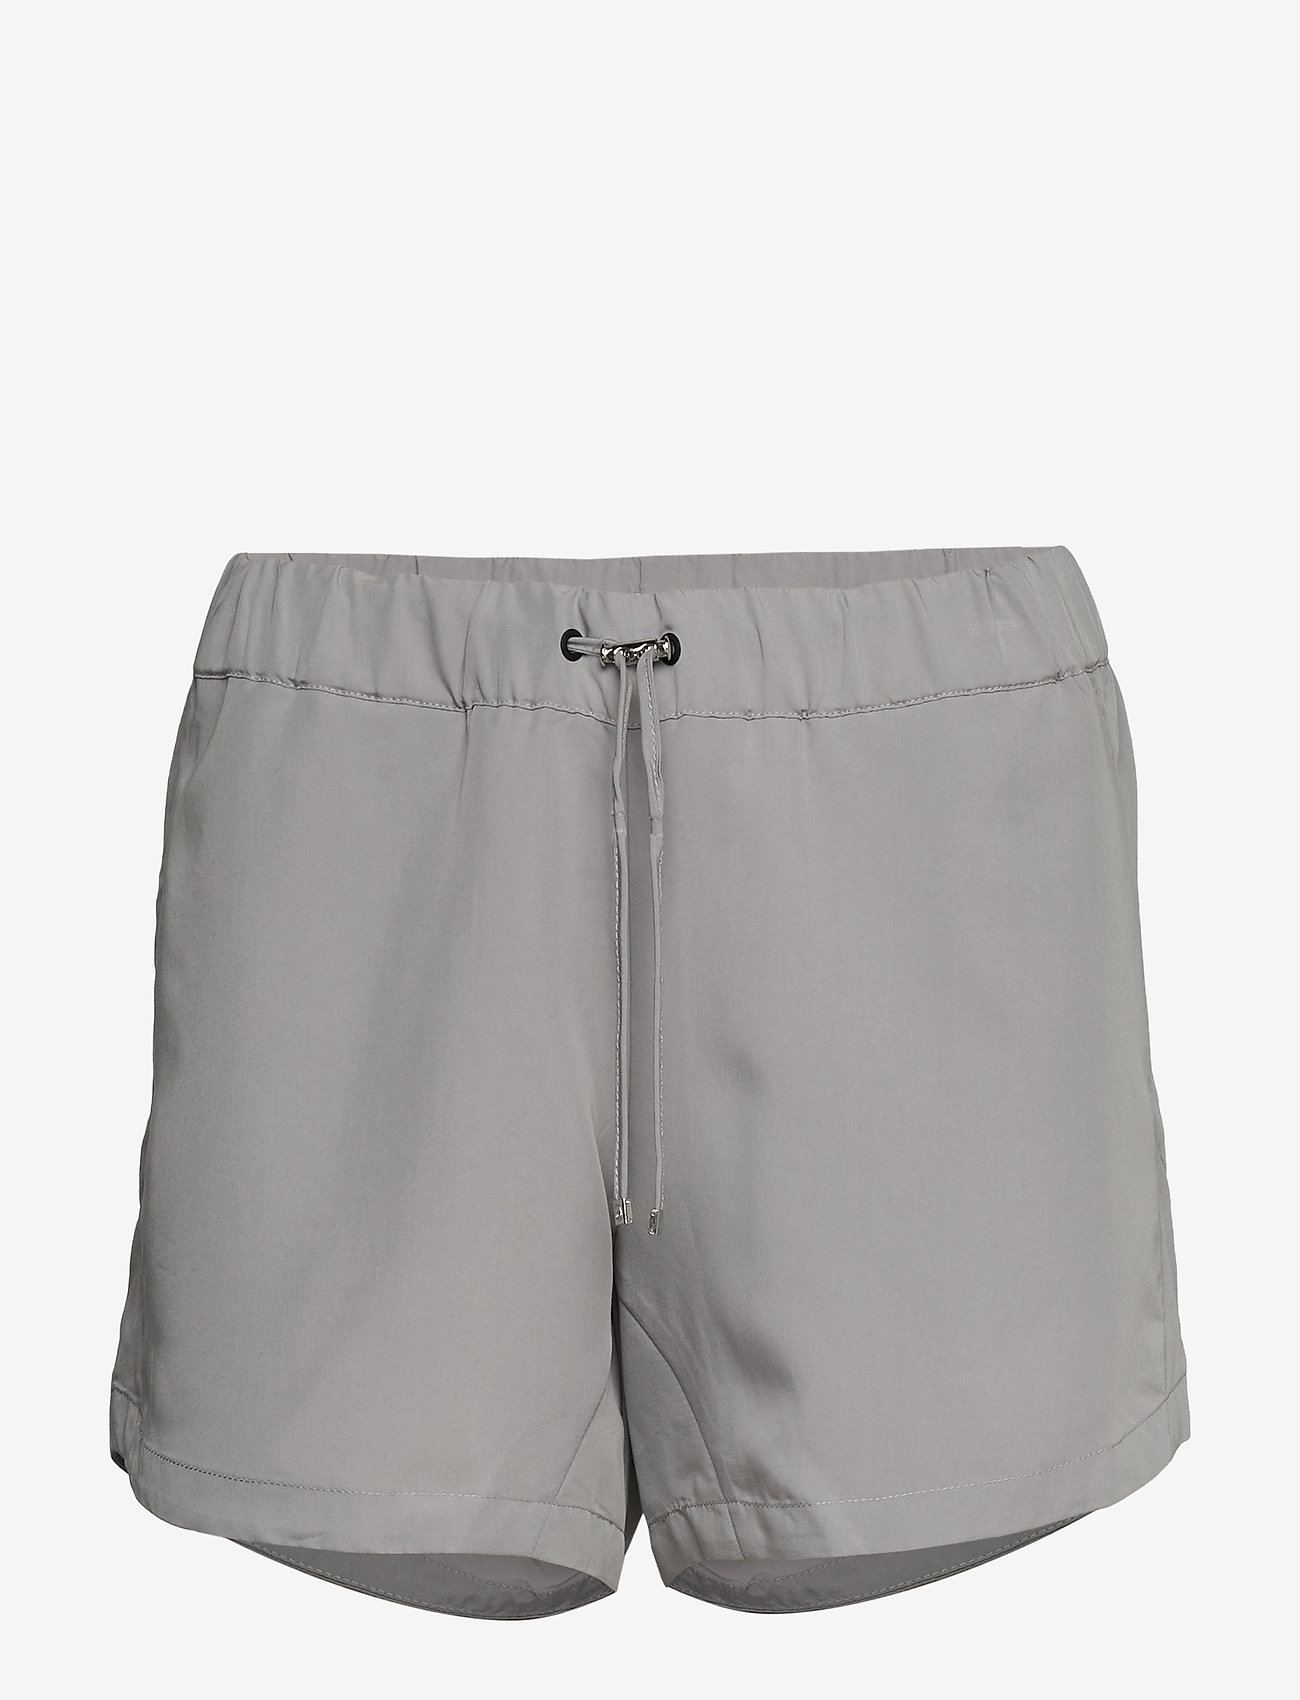 Sail Racing - W RACE WOVEN SHORTS - short de randonnée - dim grey - 0